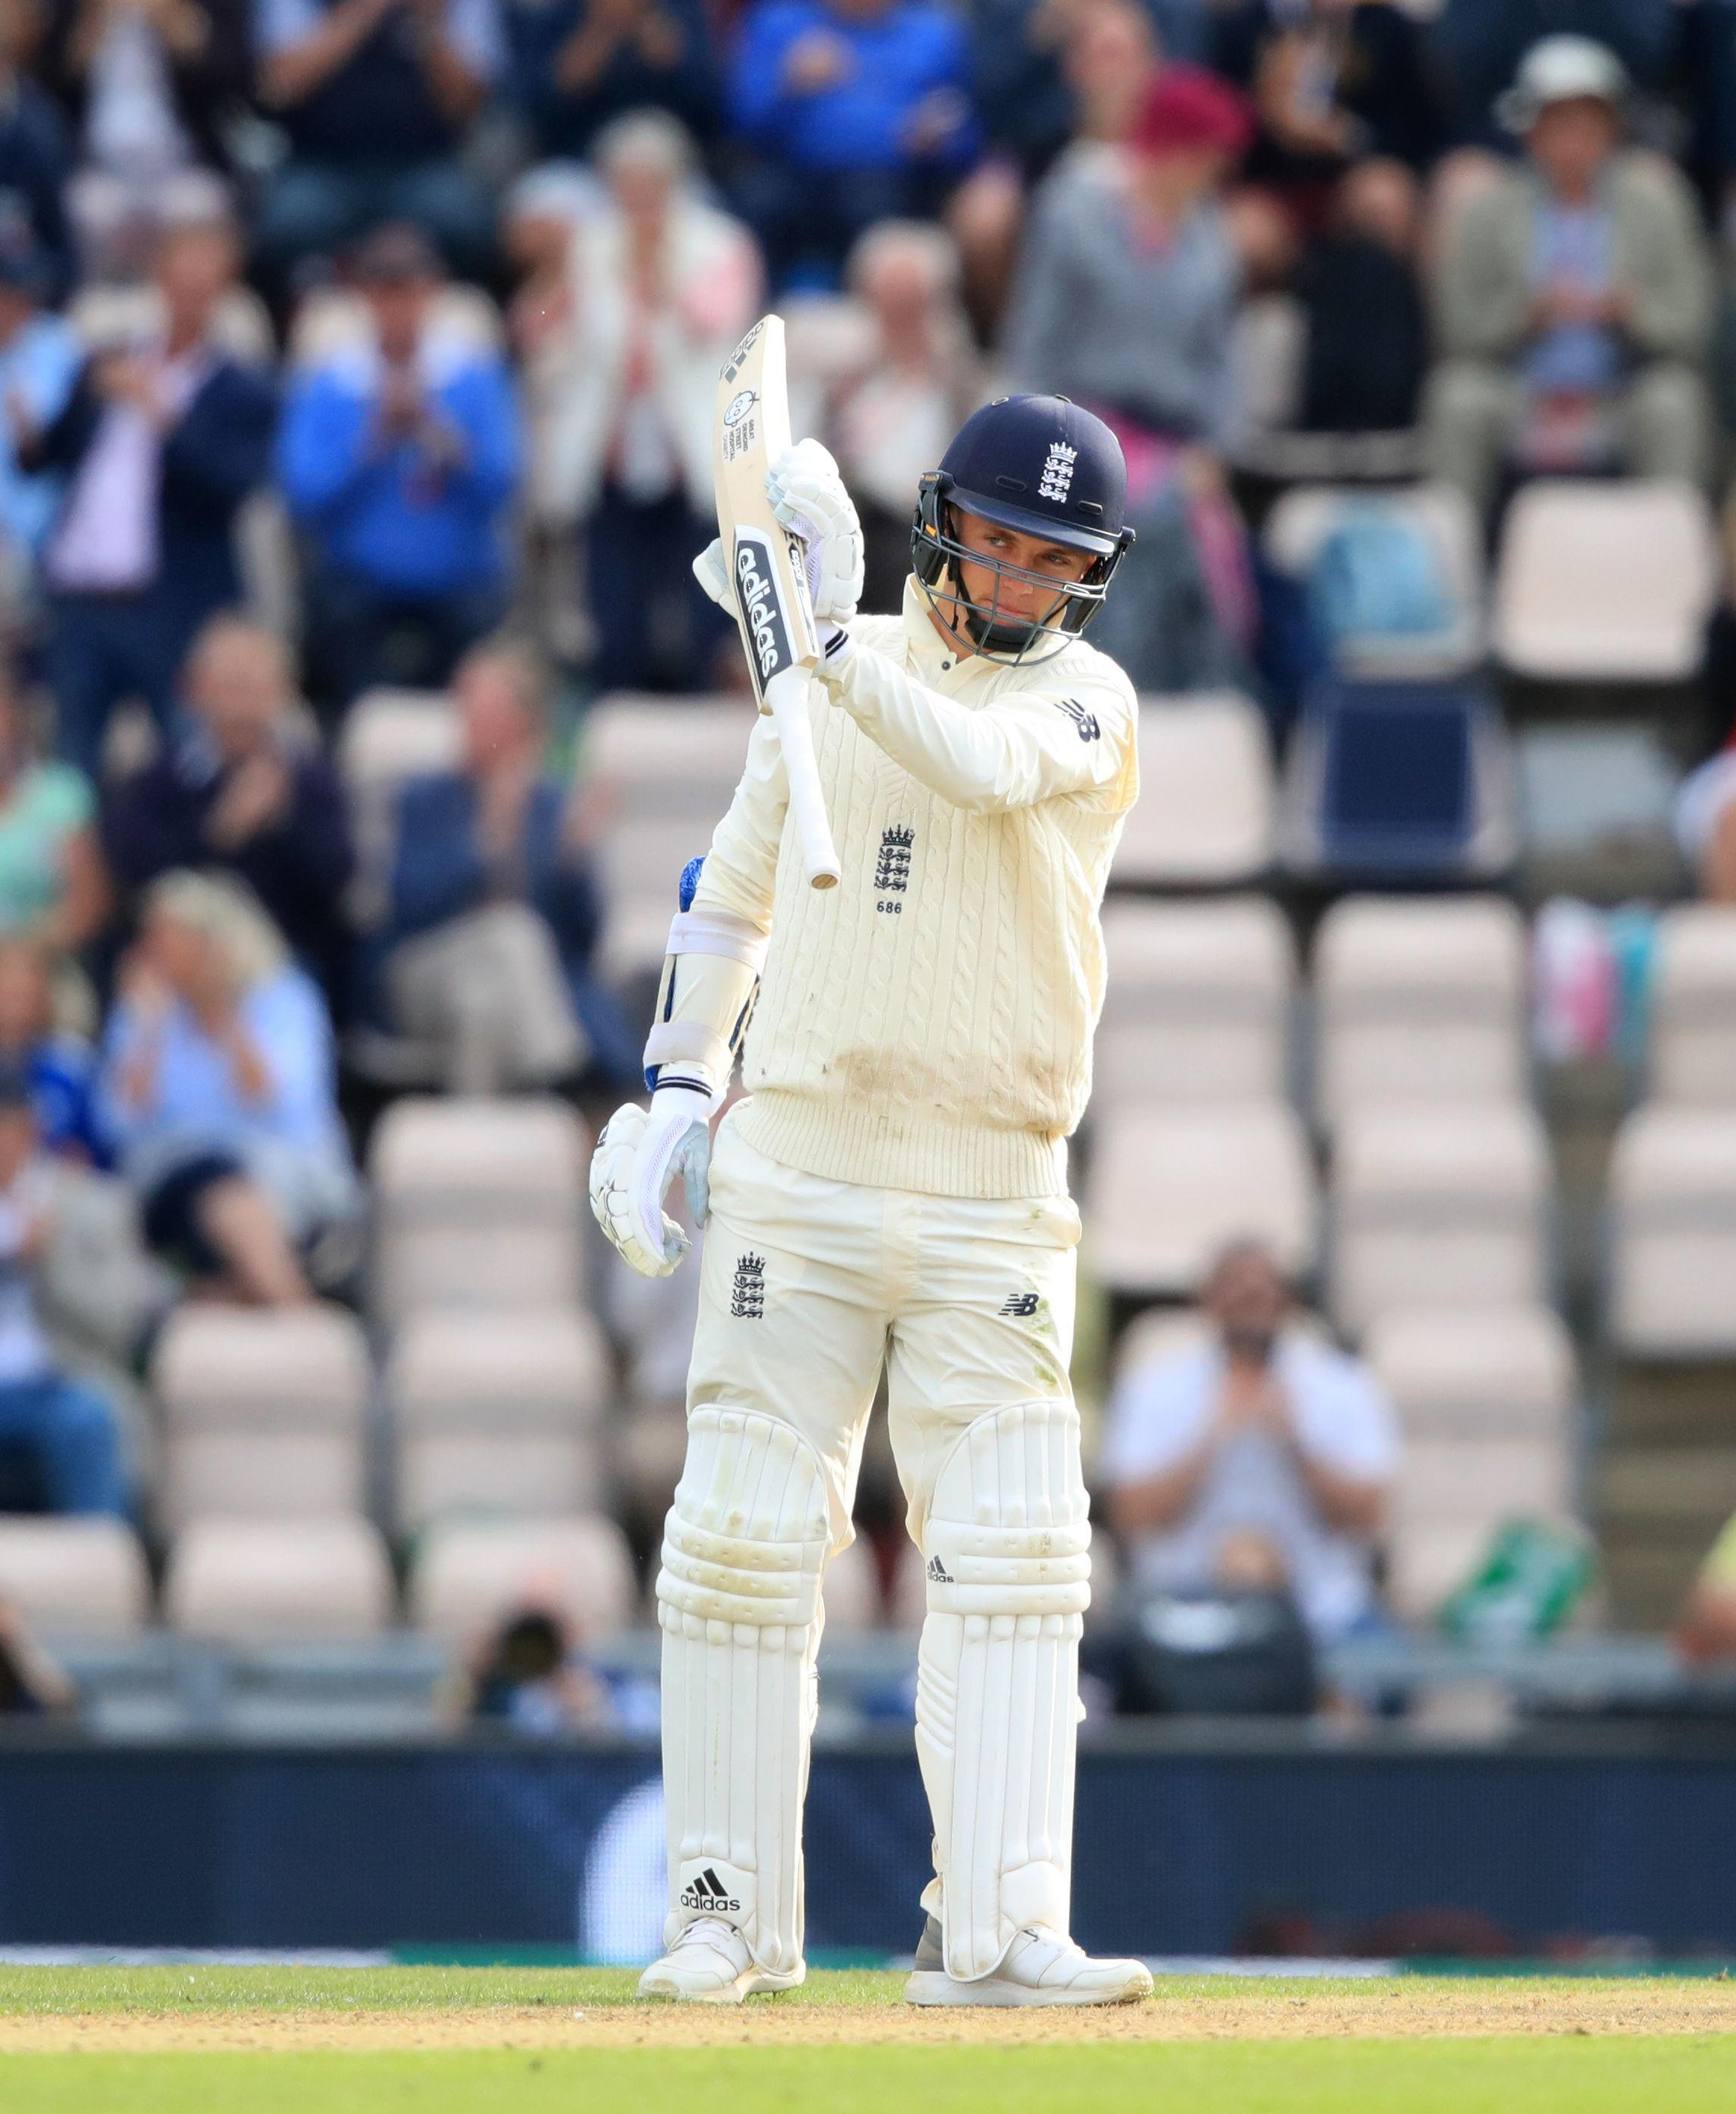 Sam Curran top-scored for England with 78, his highest Test knock